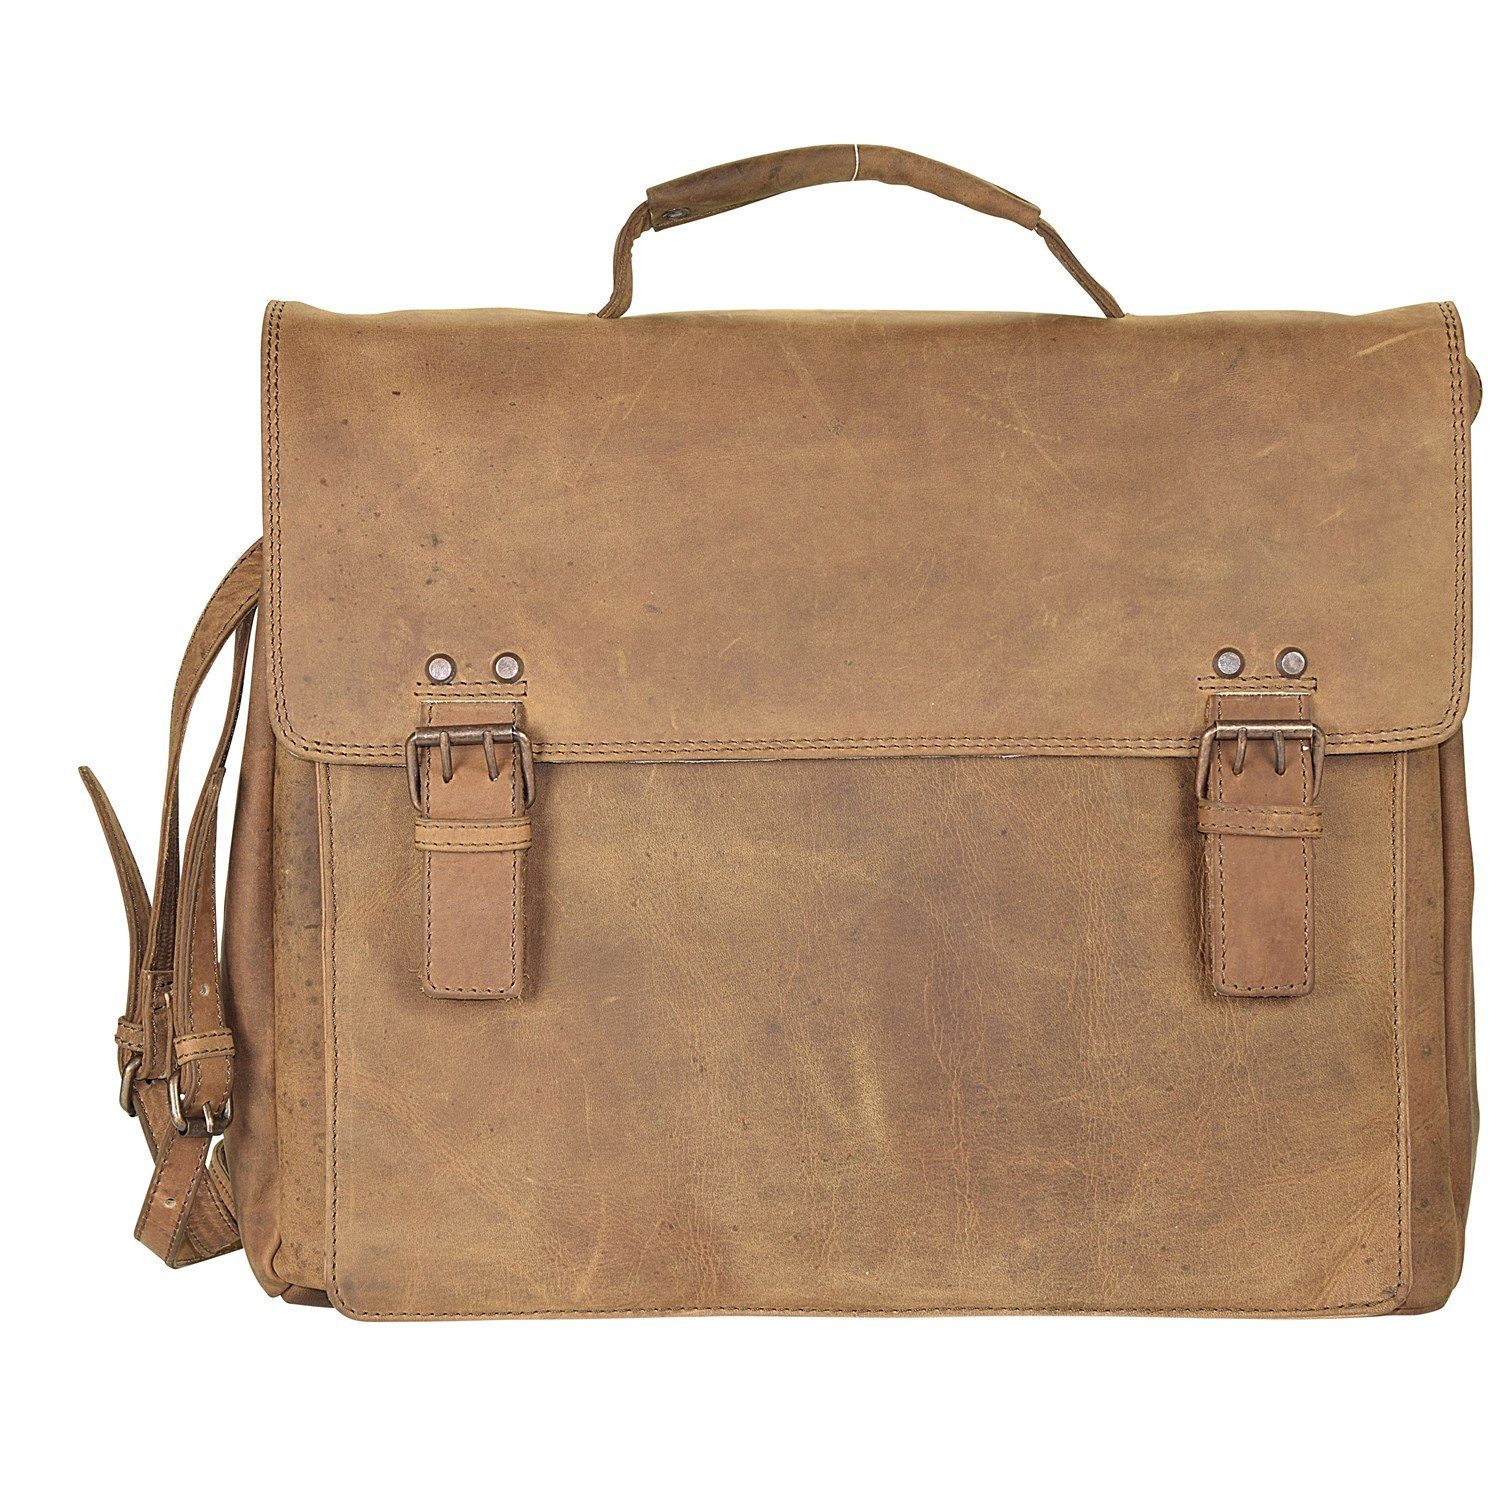 Harold's Antik Casual Aktentasche Leder 38 cm Laptoptafach